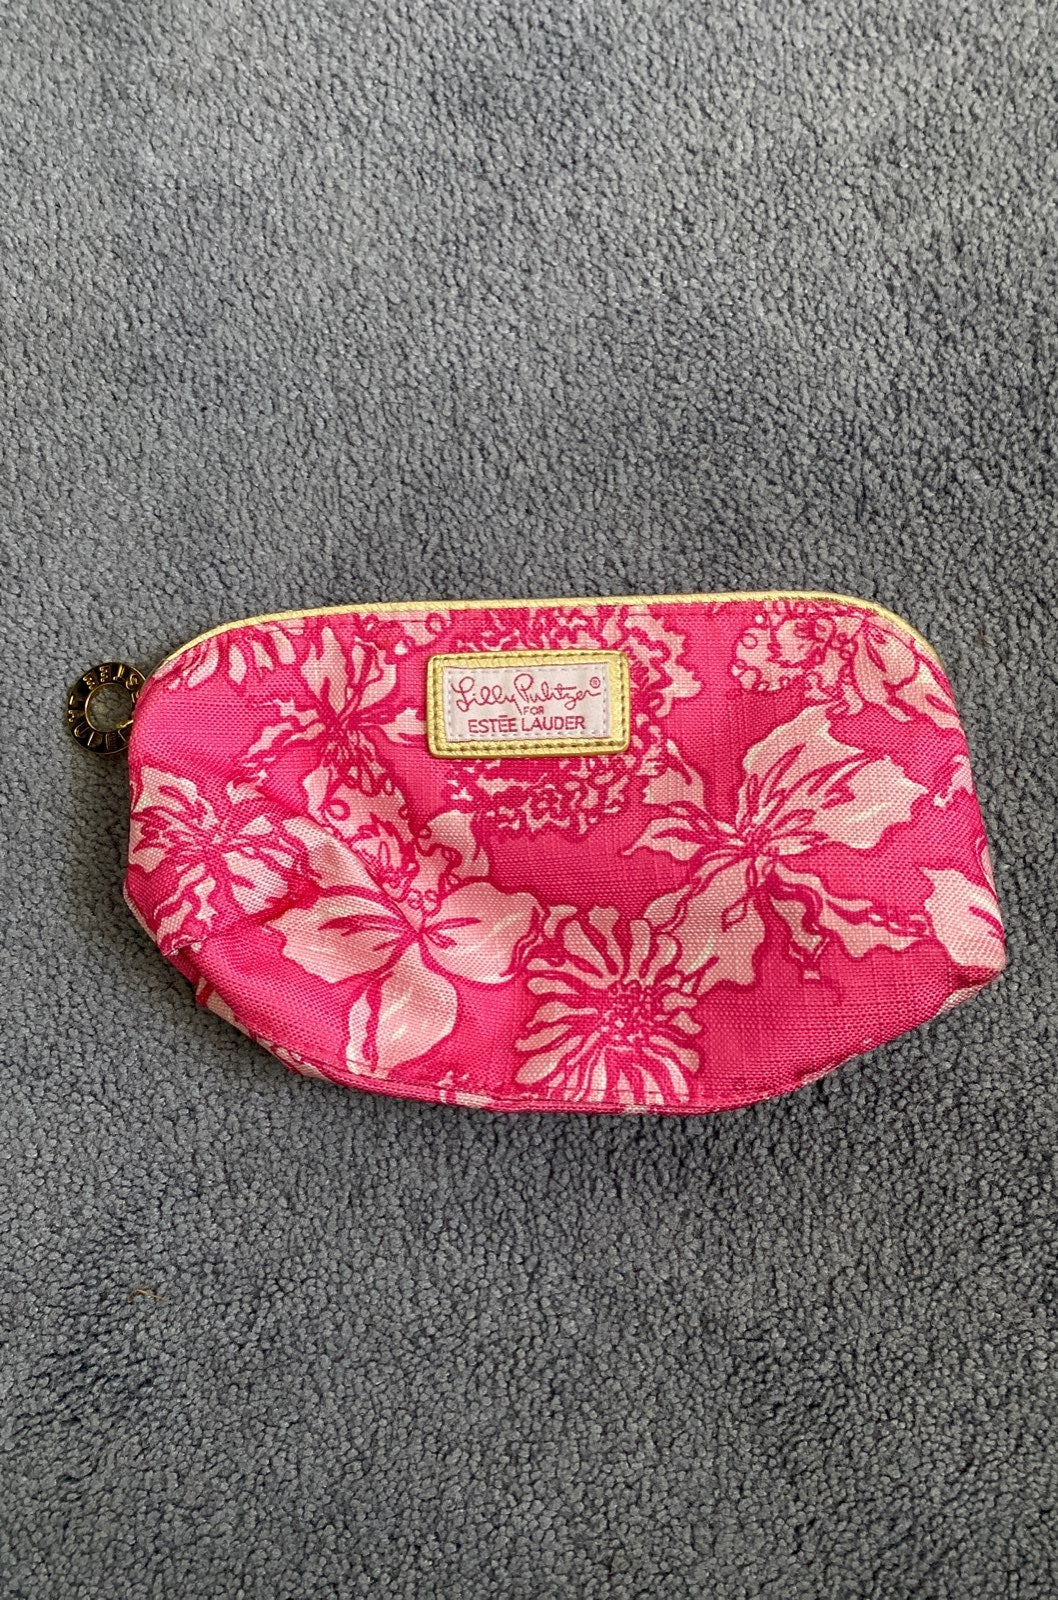 Lilly Pulitzer Estee Lauder Hand Bag